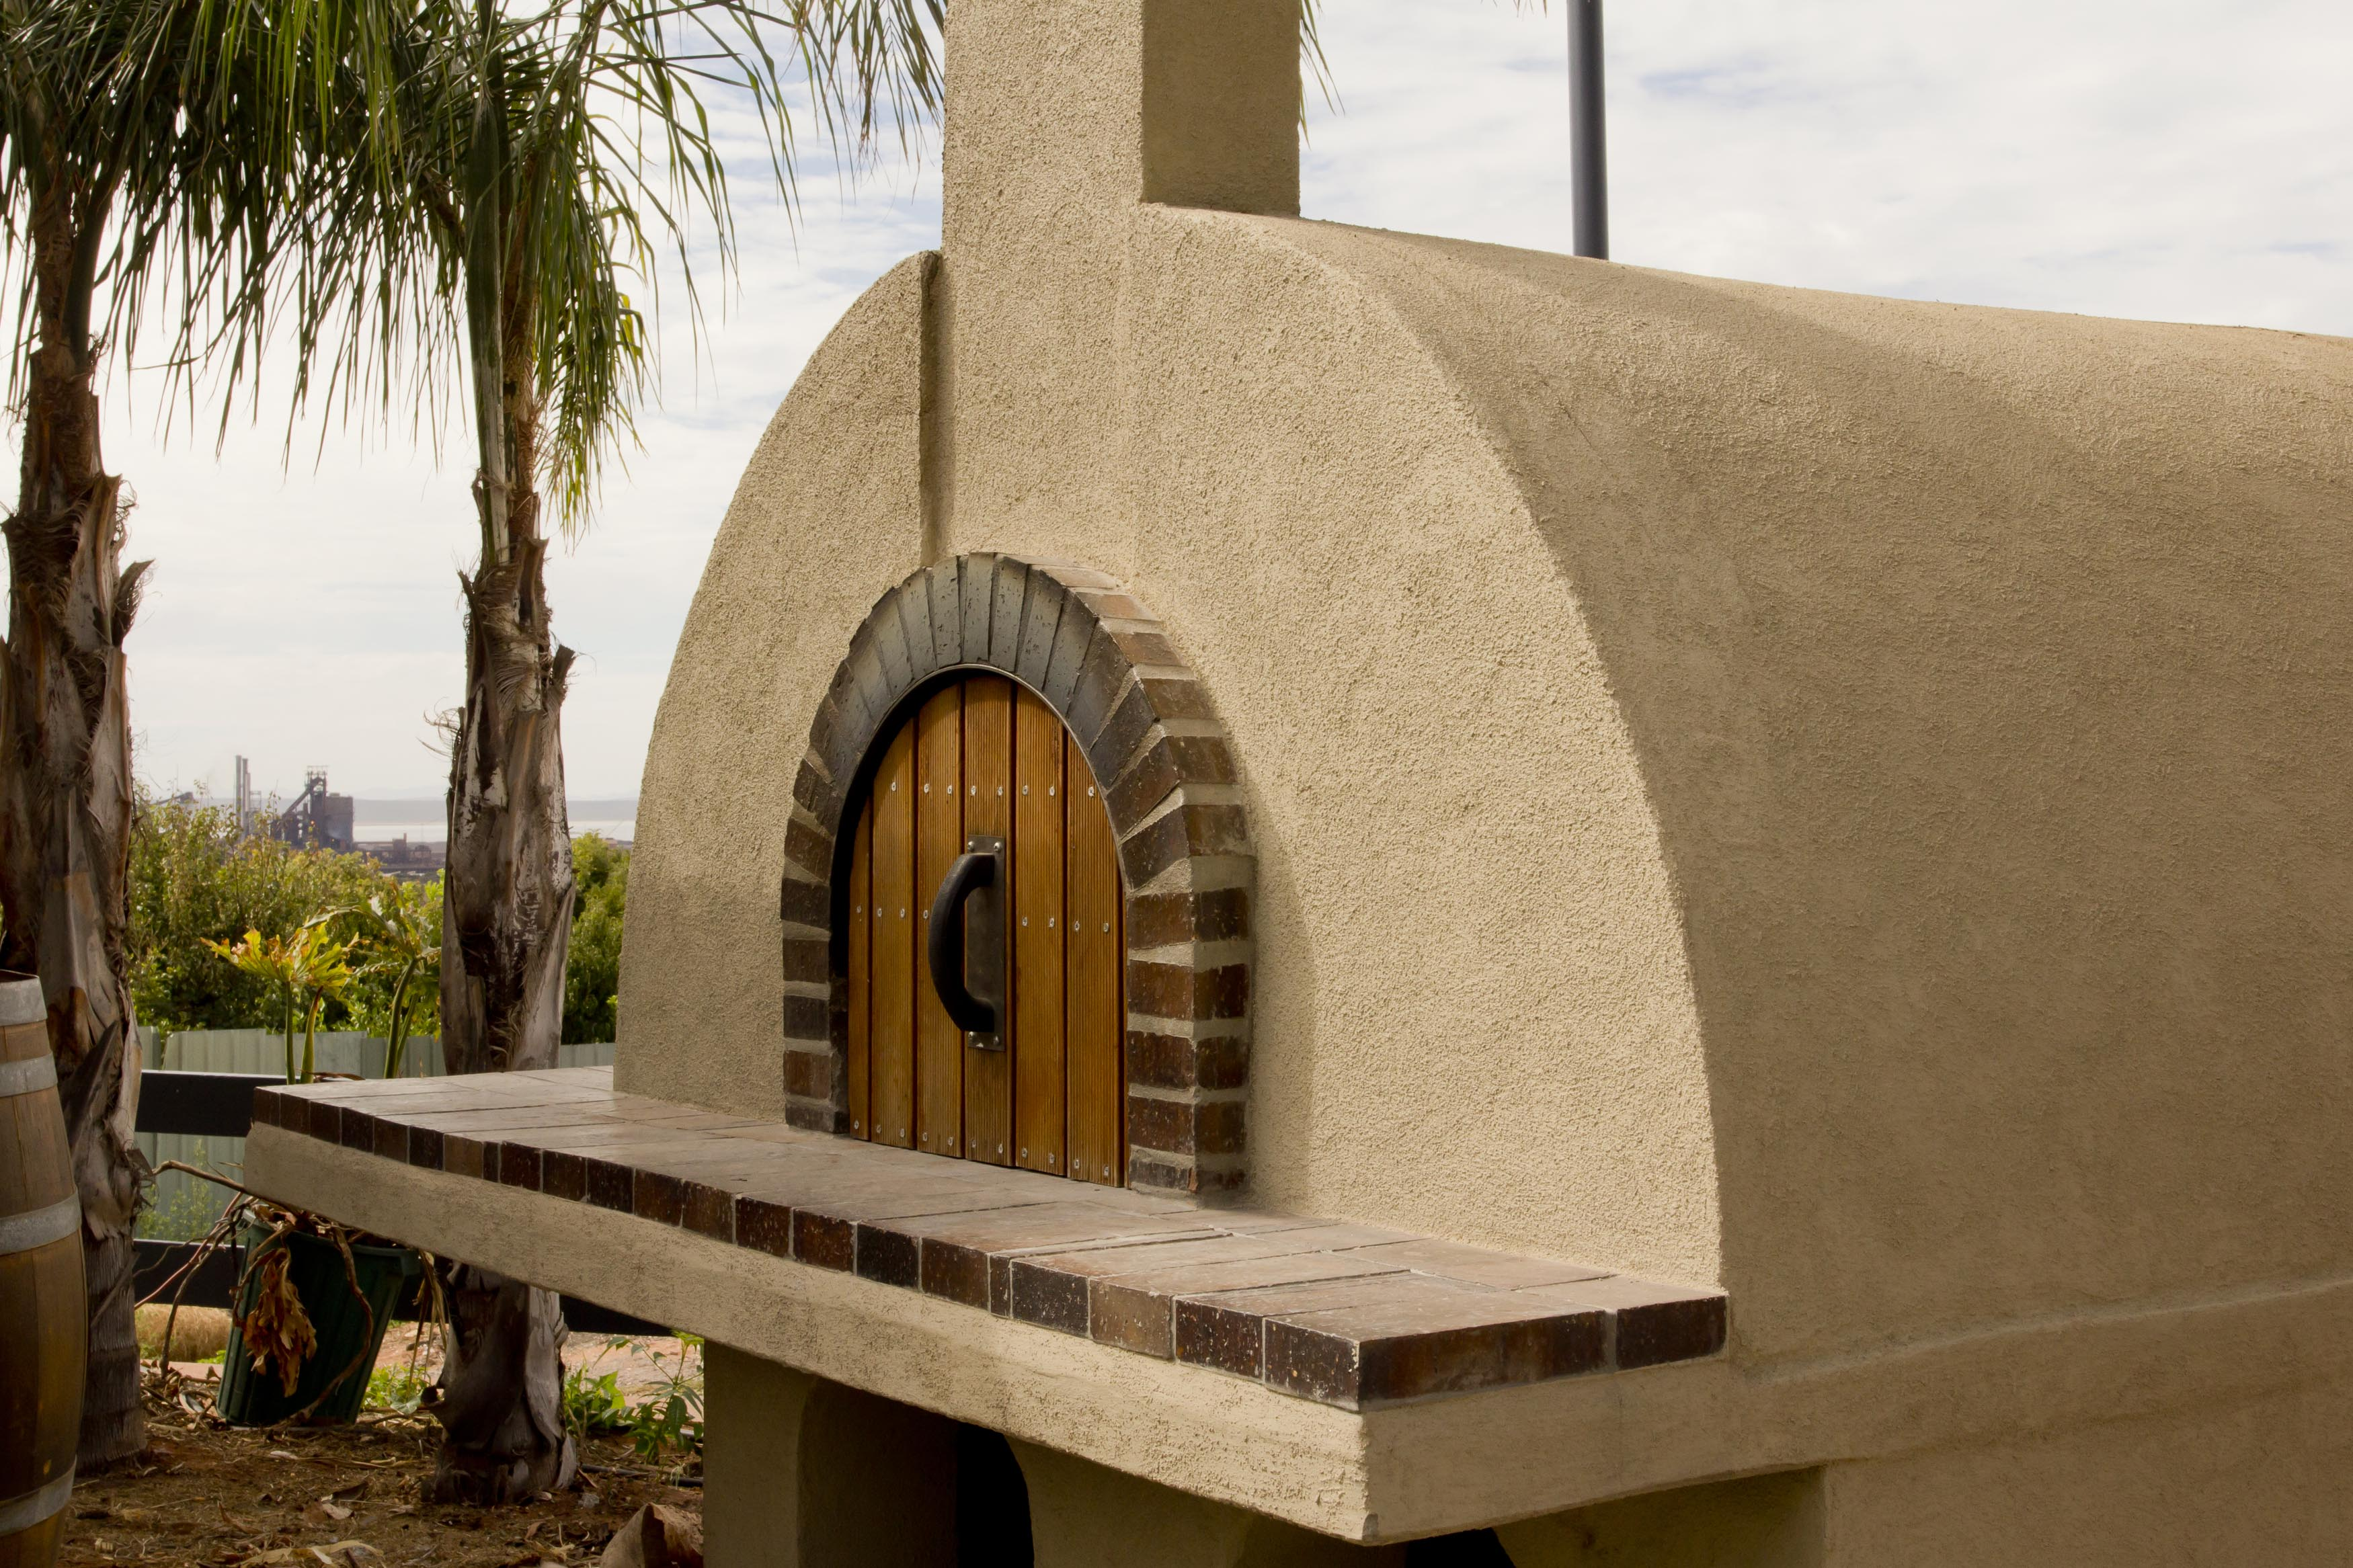 The Mirambeena Wood Oven